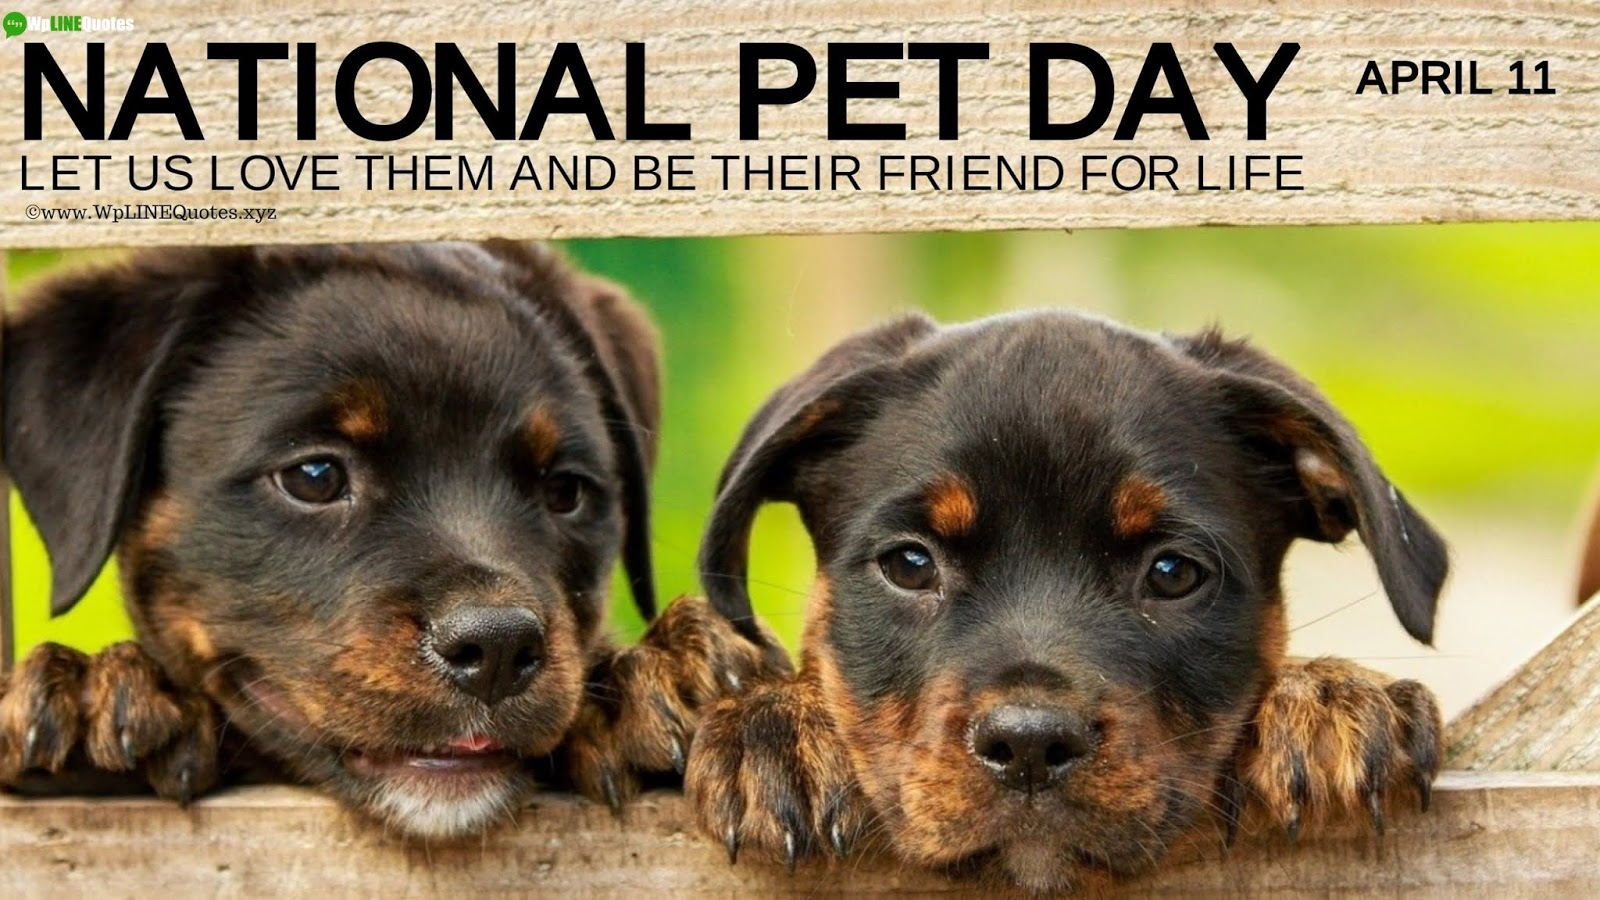 National Pet Day Quotes, Wishes, Captions, Message, Memes, Greetings, History, Facts, Images, Photos, Wallpaper